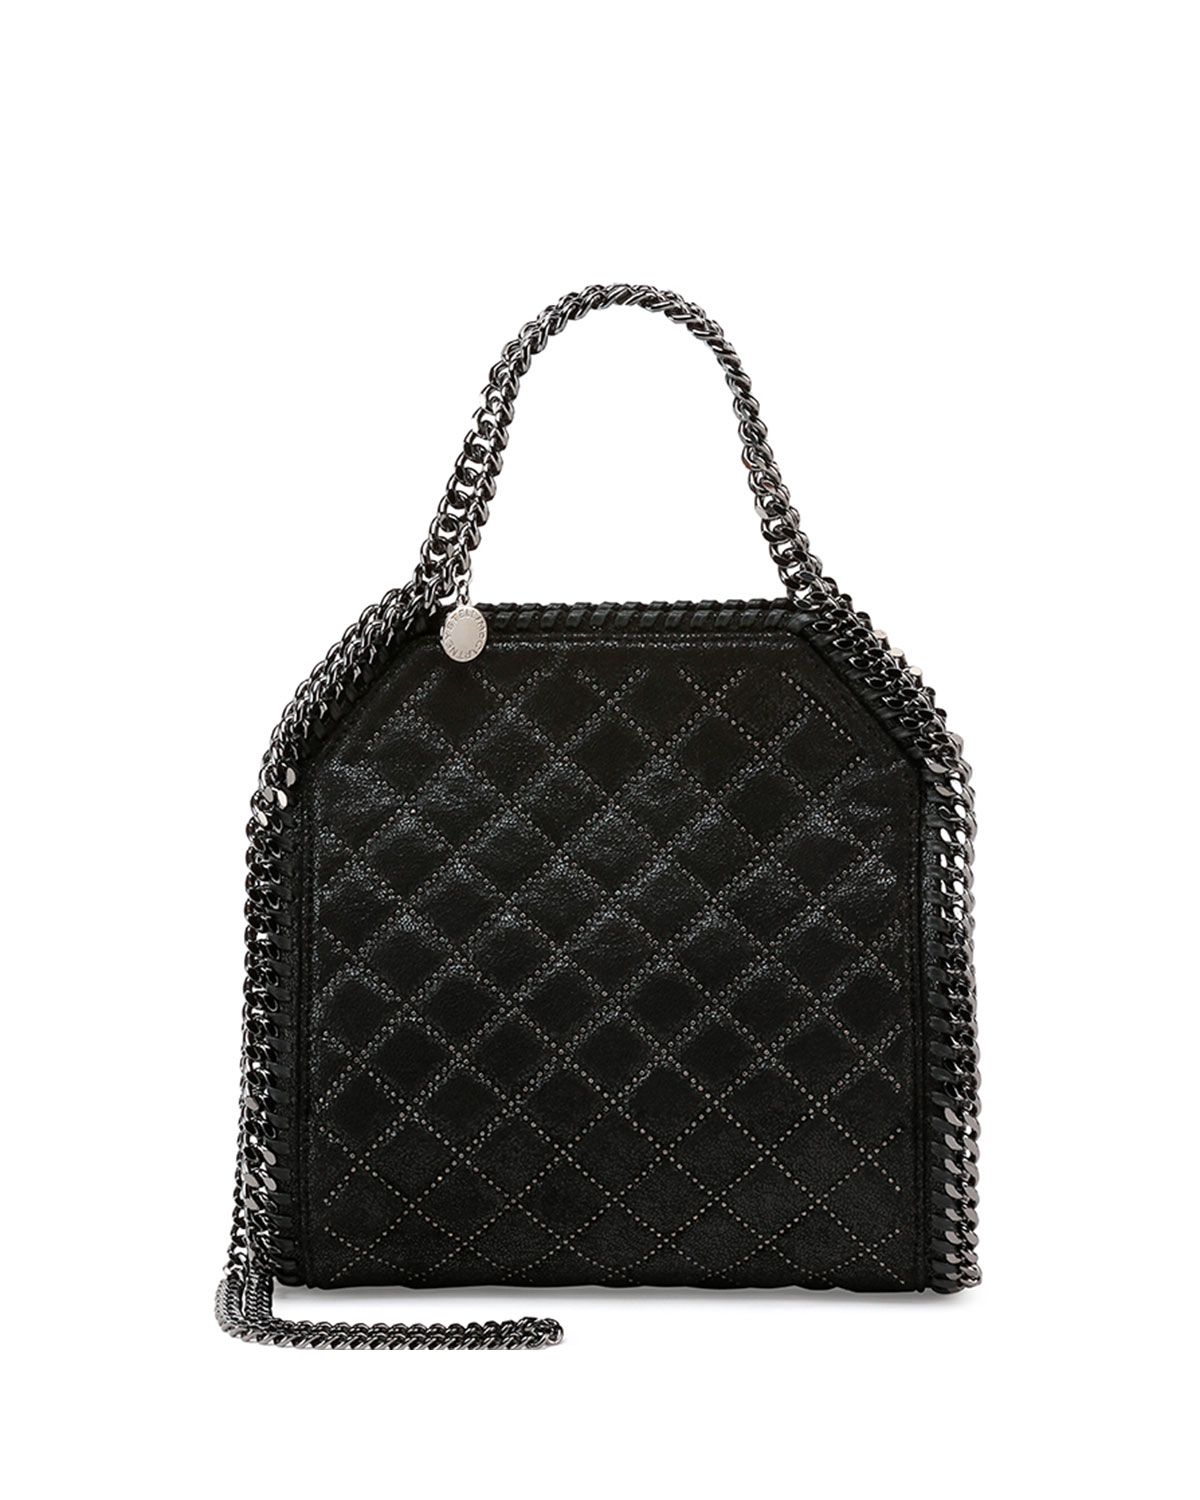 5172ed9280 Stella McCartney Falabella Mini Quilted Studs Tote Bag, Black ...